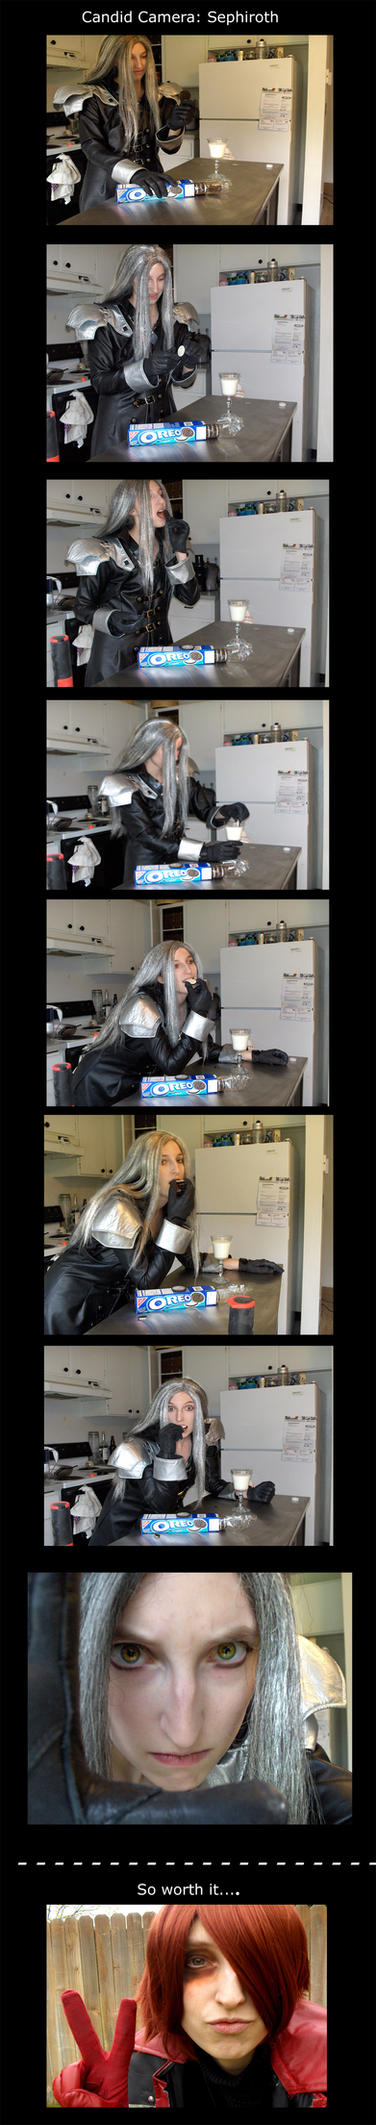 Candid Camera: Sephiroth by Vega-Sailor-Cosplay